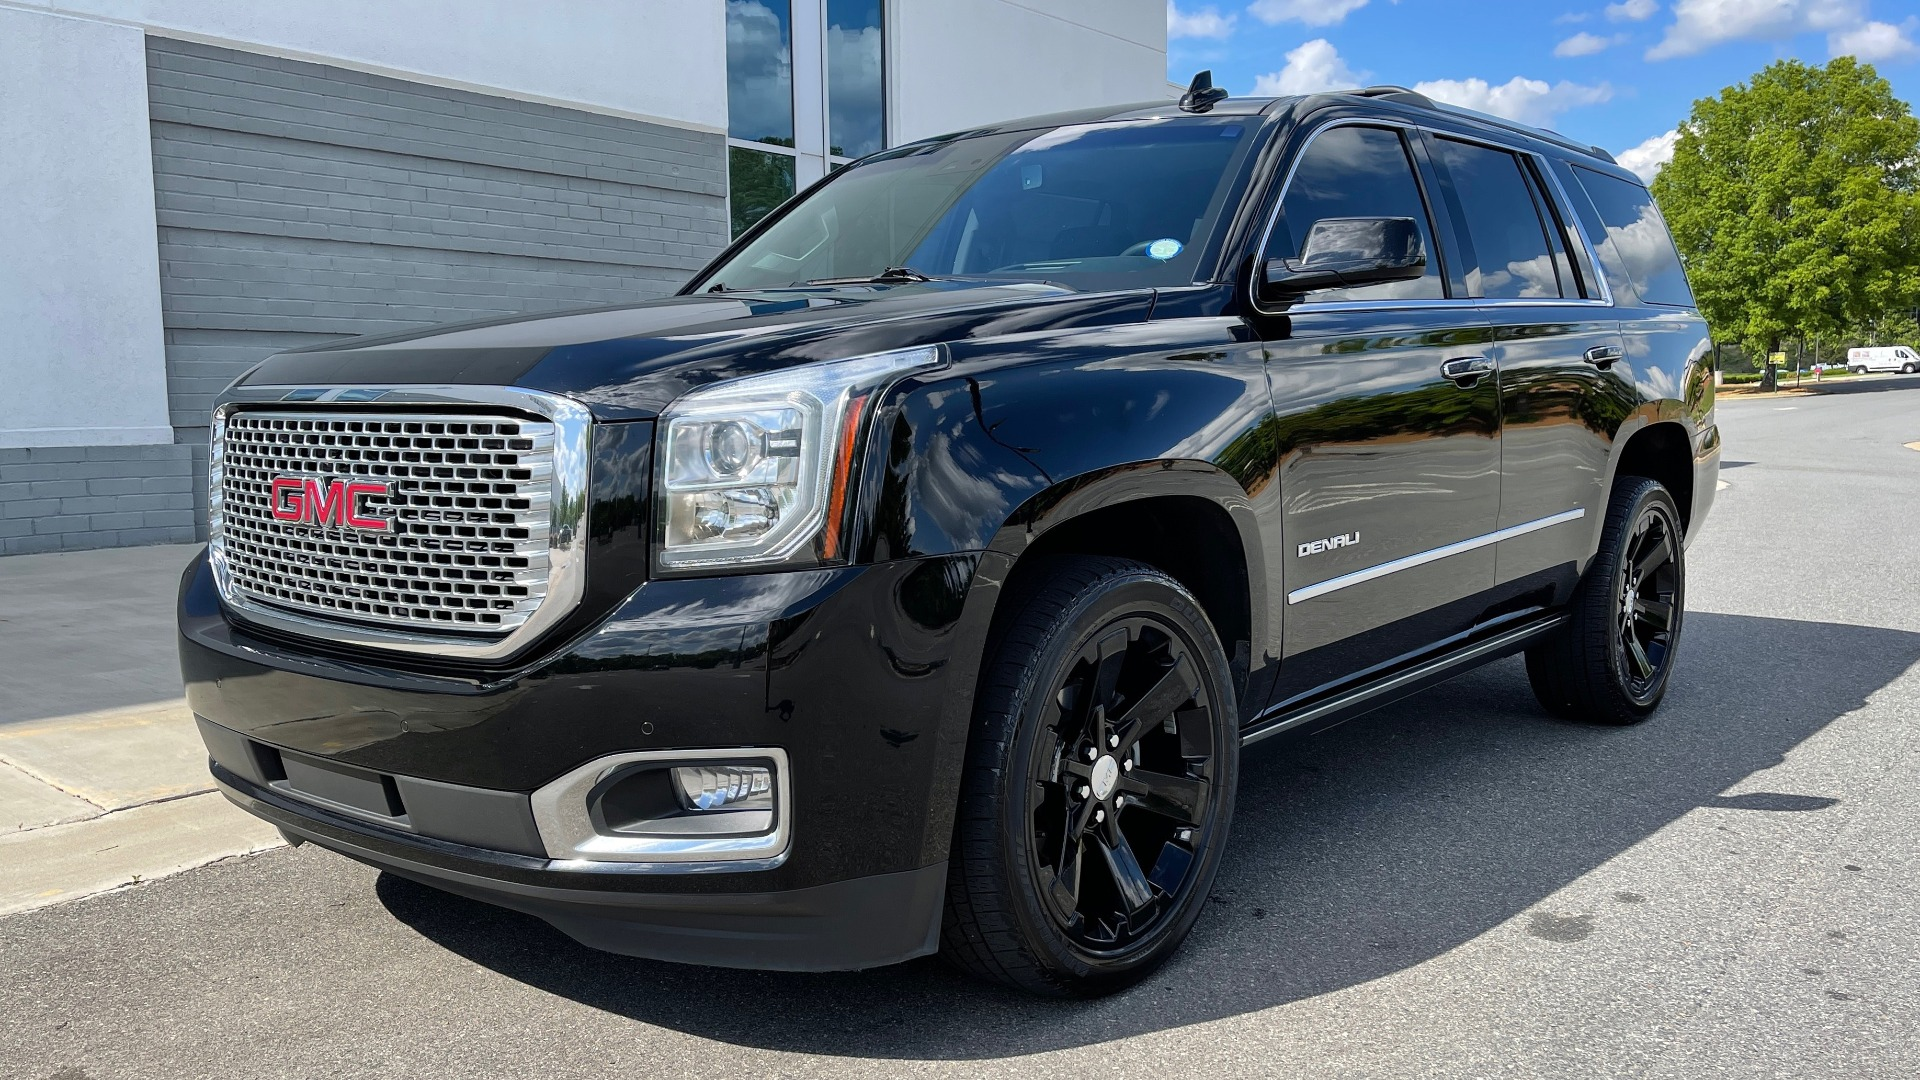 Used 2017 GMC YUKON DENALI 4WD / OPEN ROAD / NAV / ENTERTAINMENT / SUNROOF / ADAPT CRUISE for sale Sold at Formula Imports in Charlotte NC 28227 3